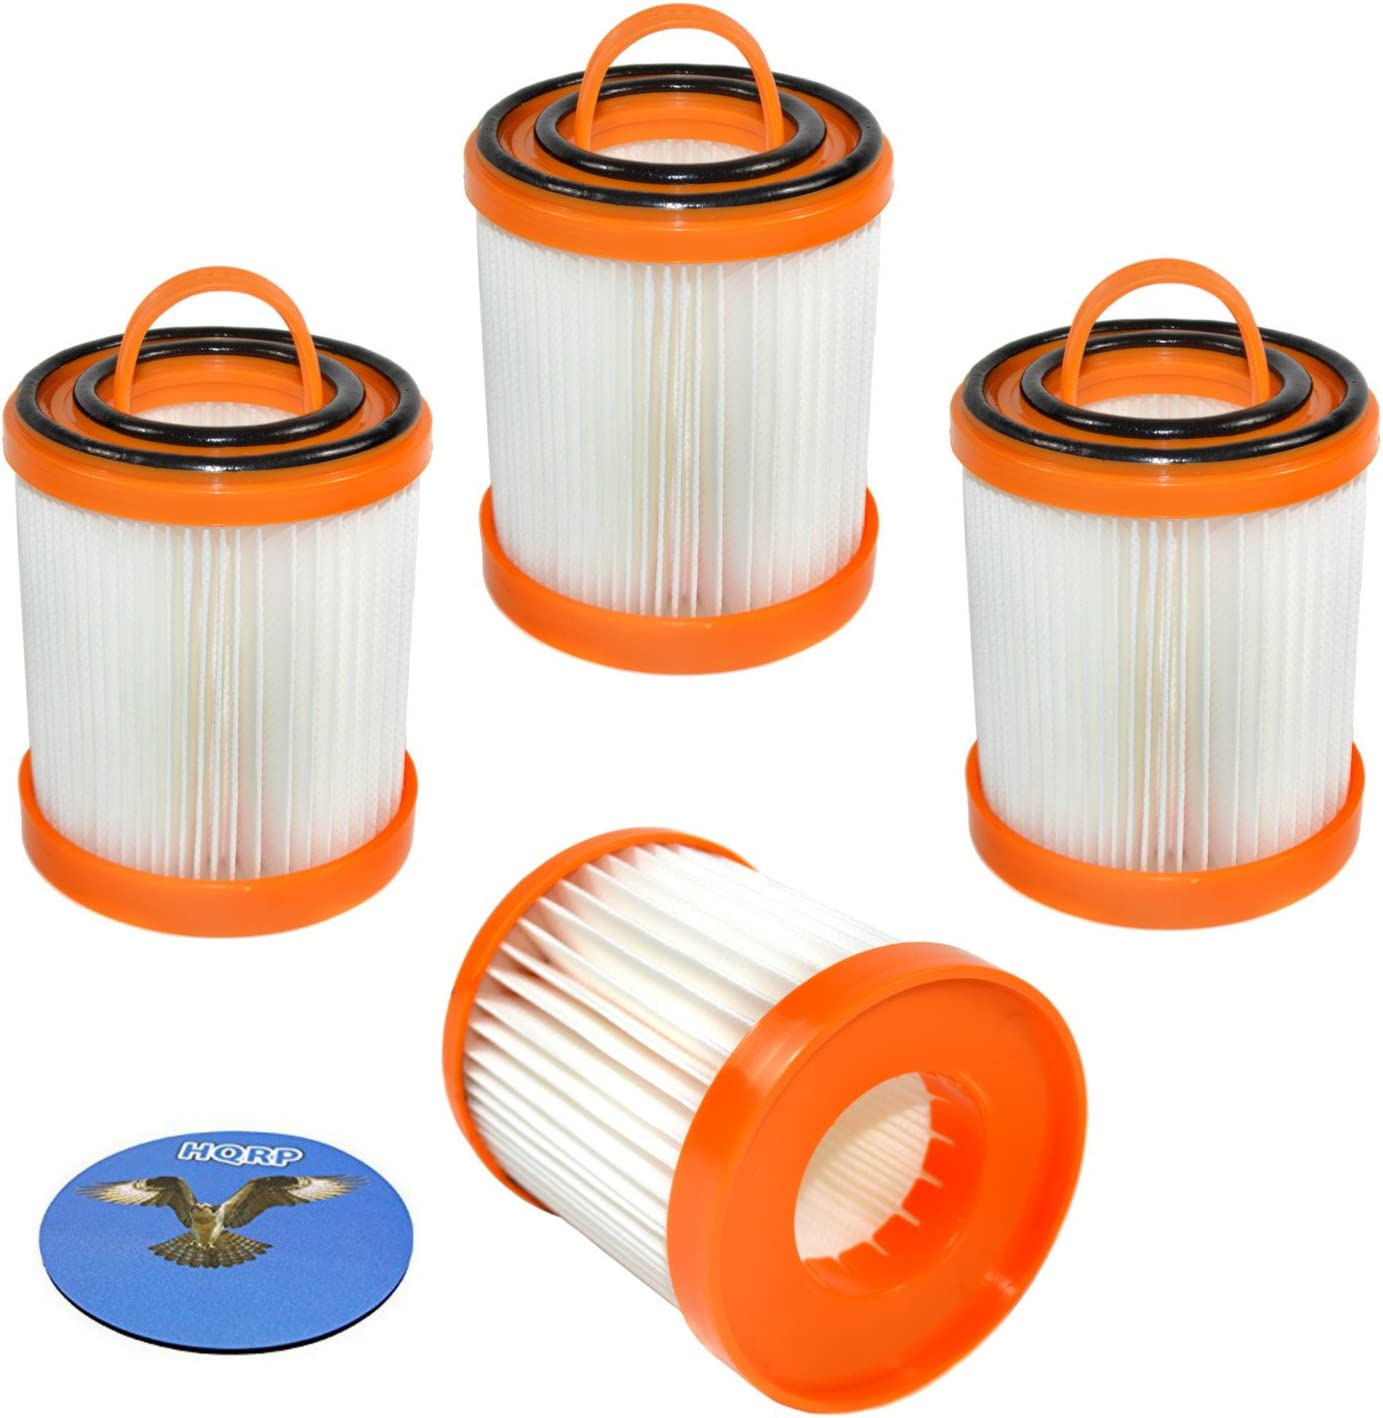 HQRP 4-Pack Dust Cup Filter for Eureka Bagless Vacuum Cleaners 62136, 62136A, 61825, 61825-R, DCF-3, DCF3, ER-1880, ER-1830, 71738A-4 Replacement Coaster